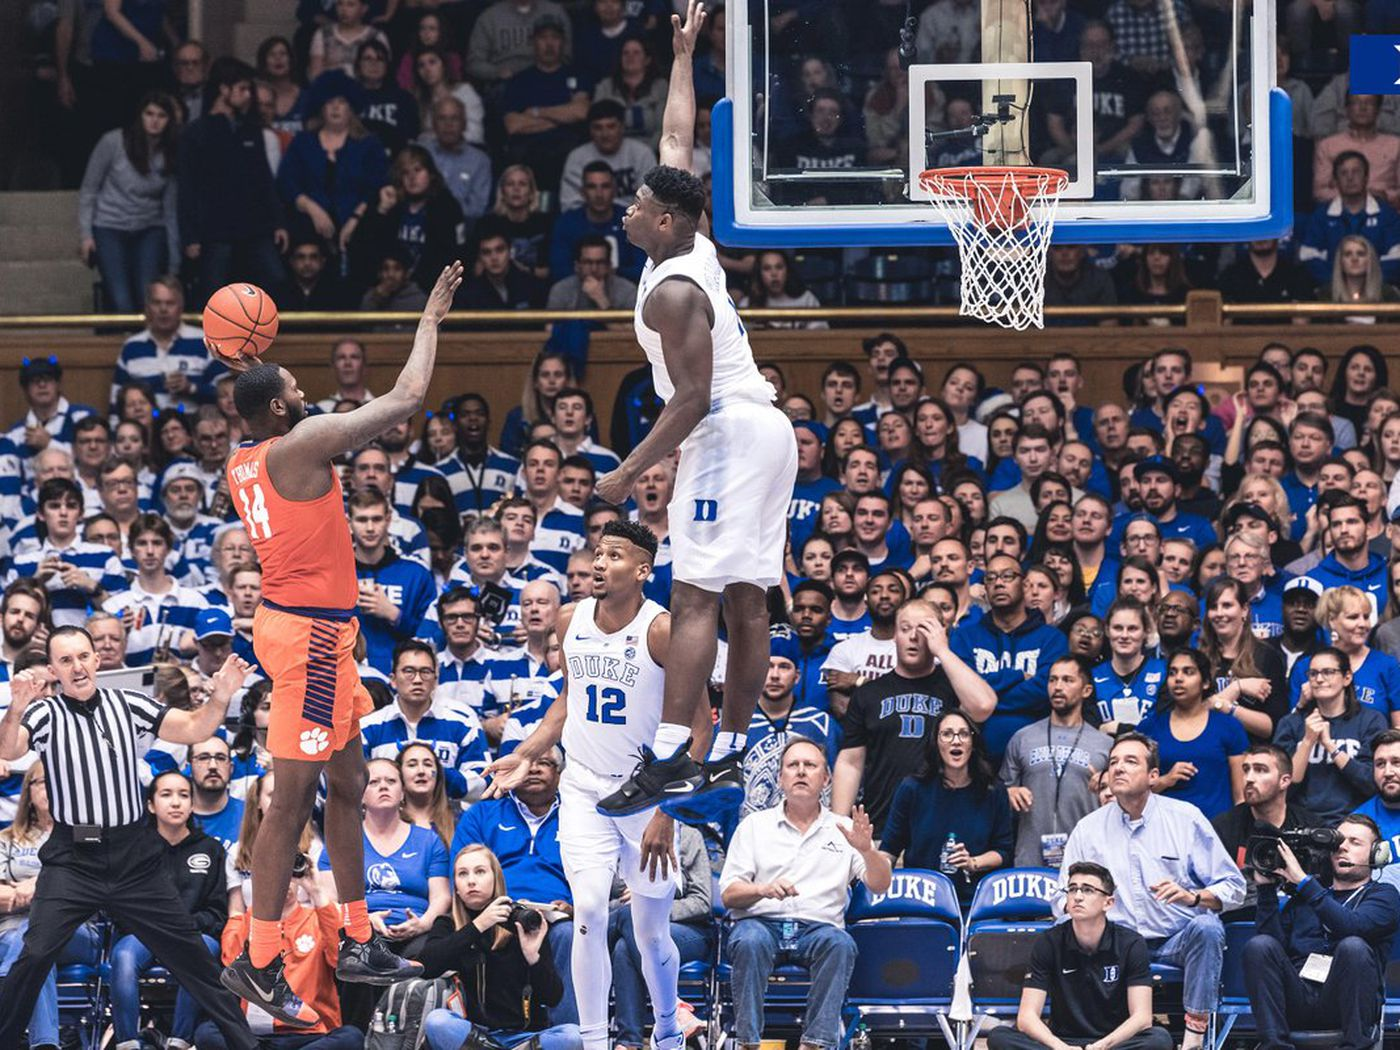 This photo of Zion Williamson is so unbelievable, it looks